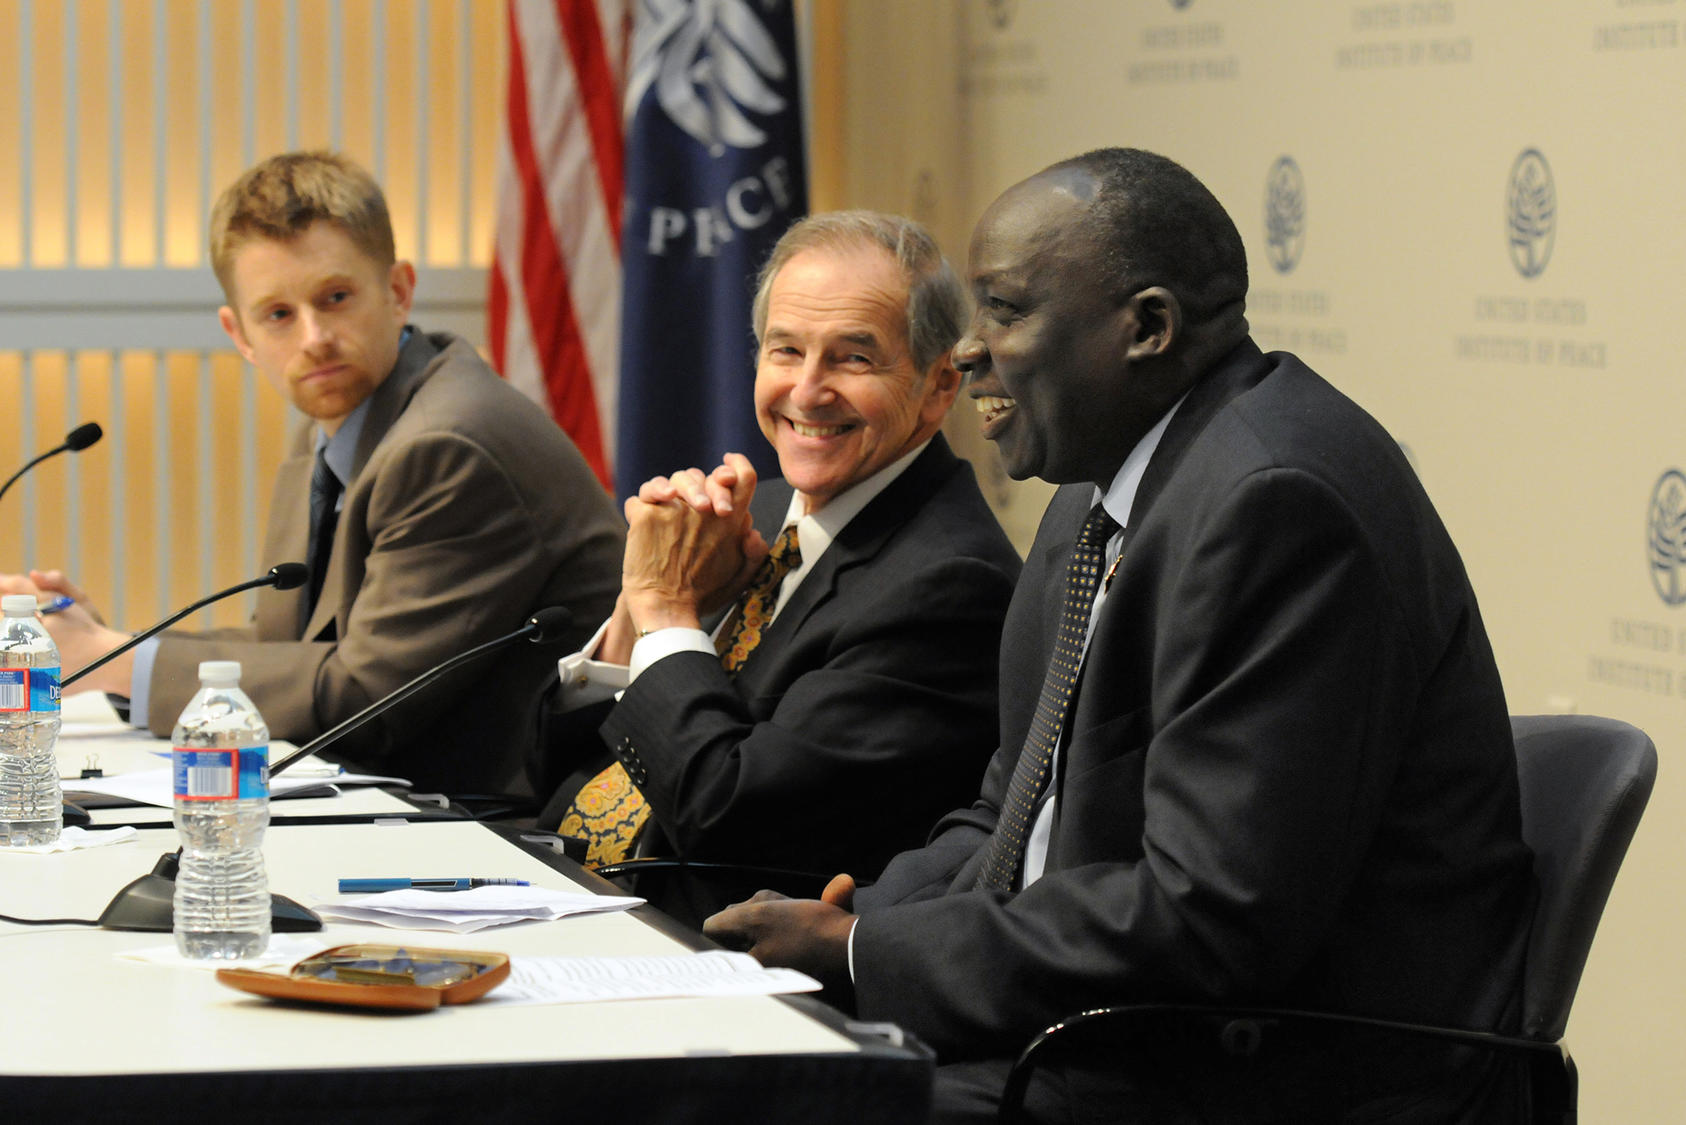 Ambassador Lyman at USIP event on South Sudan, July 9, 2012.